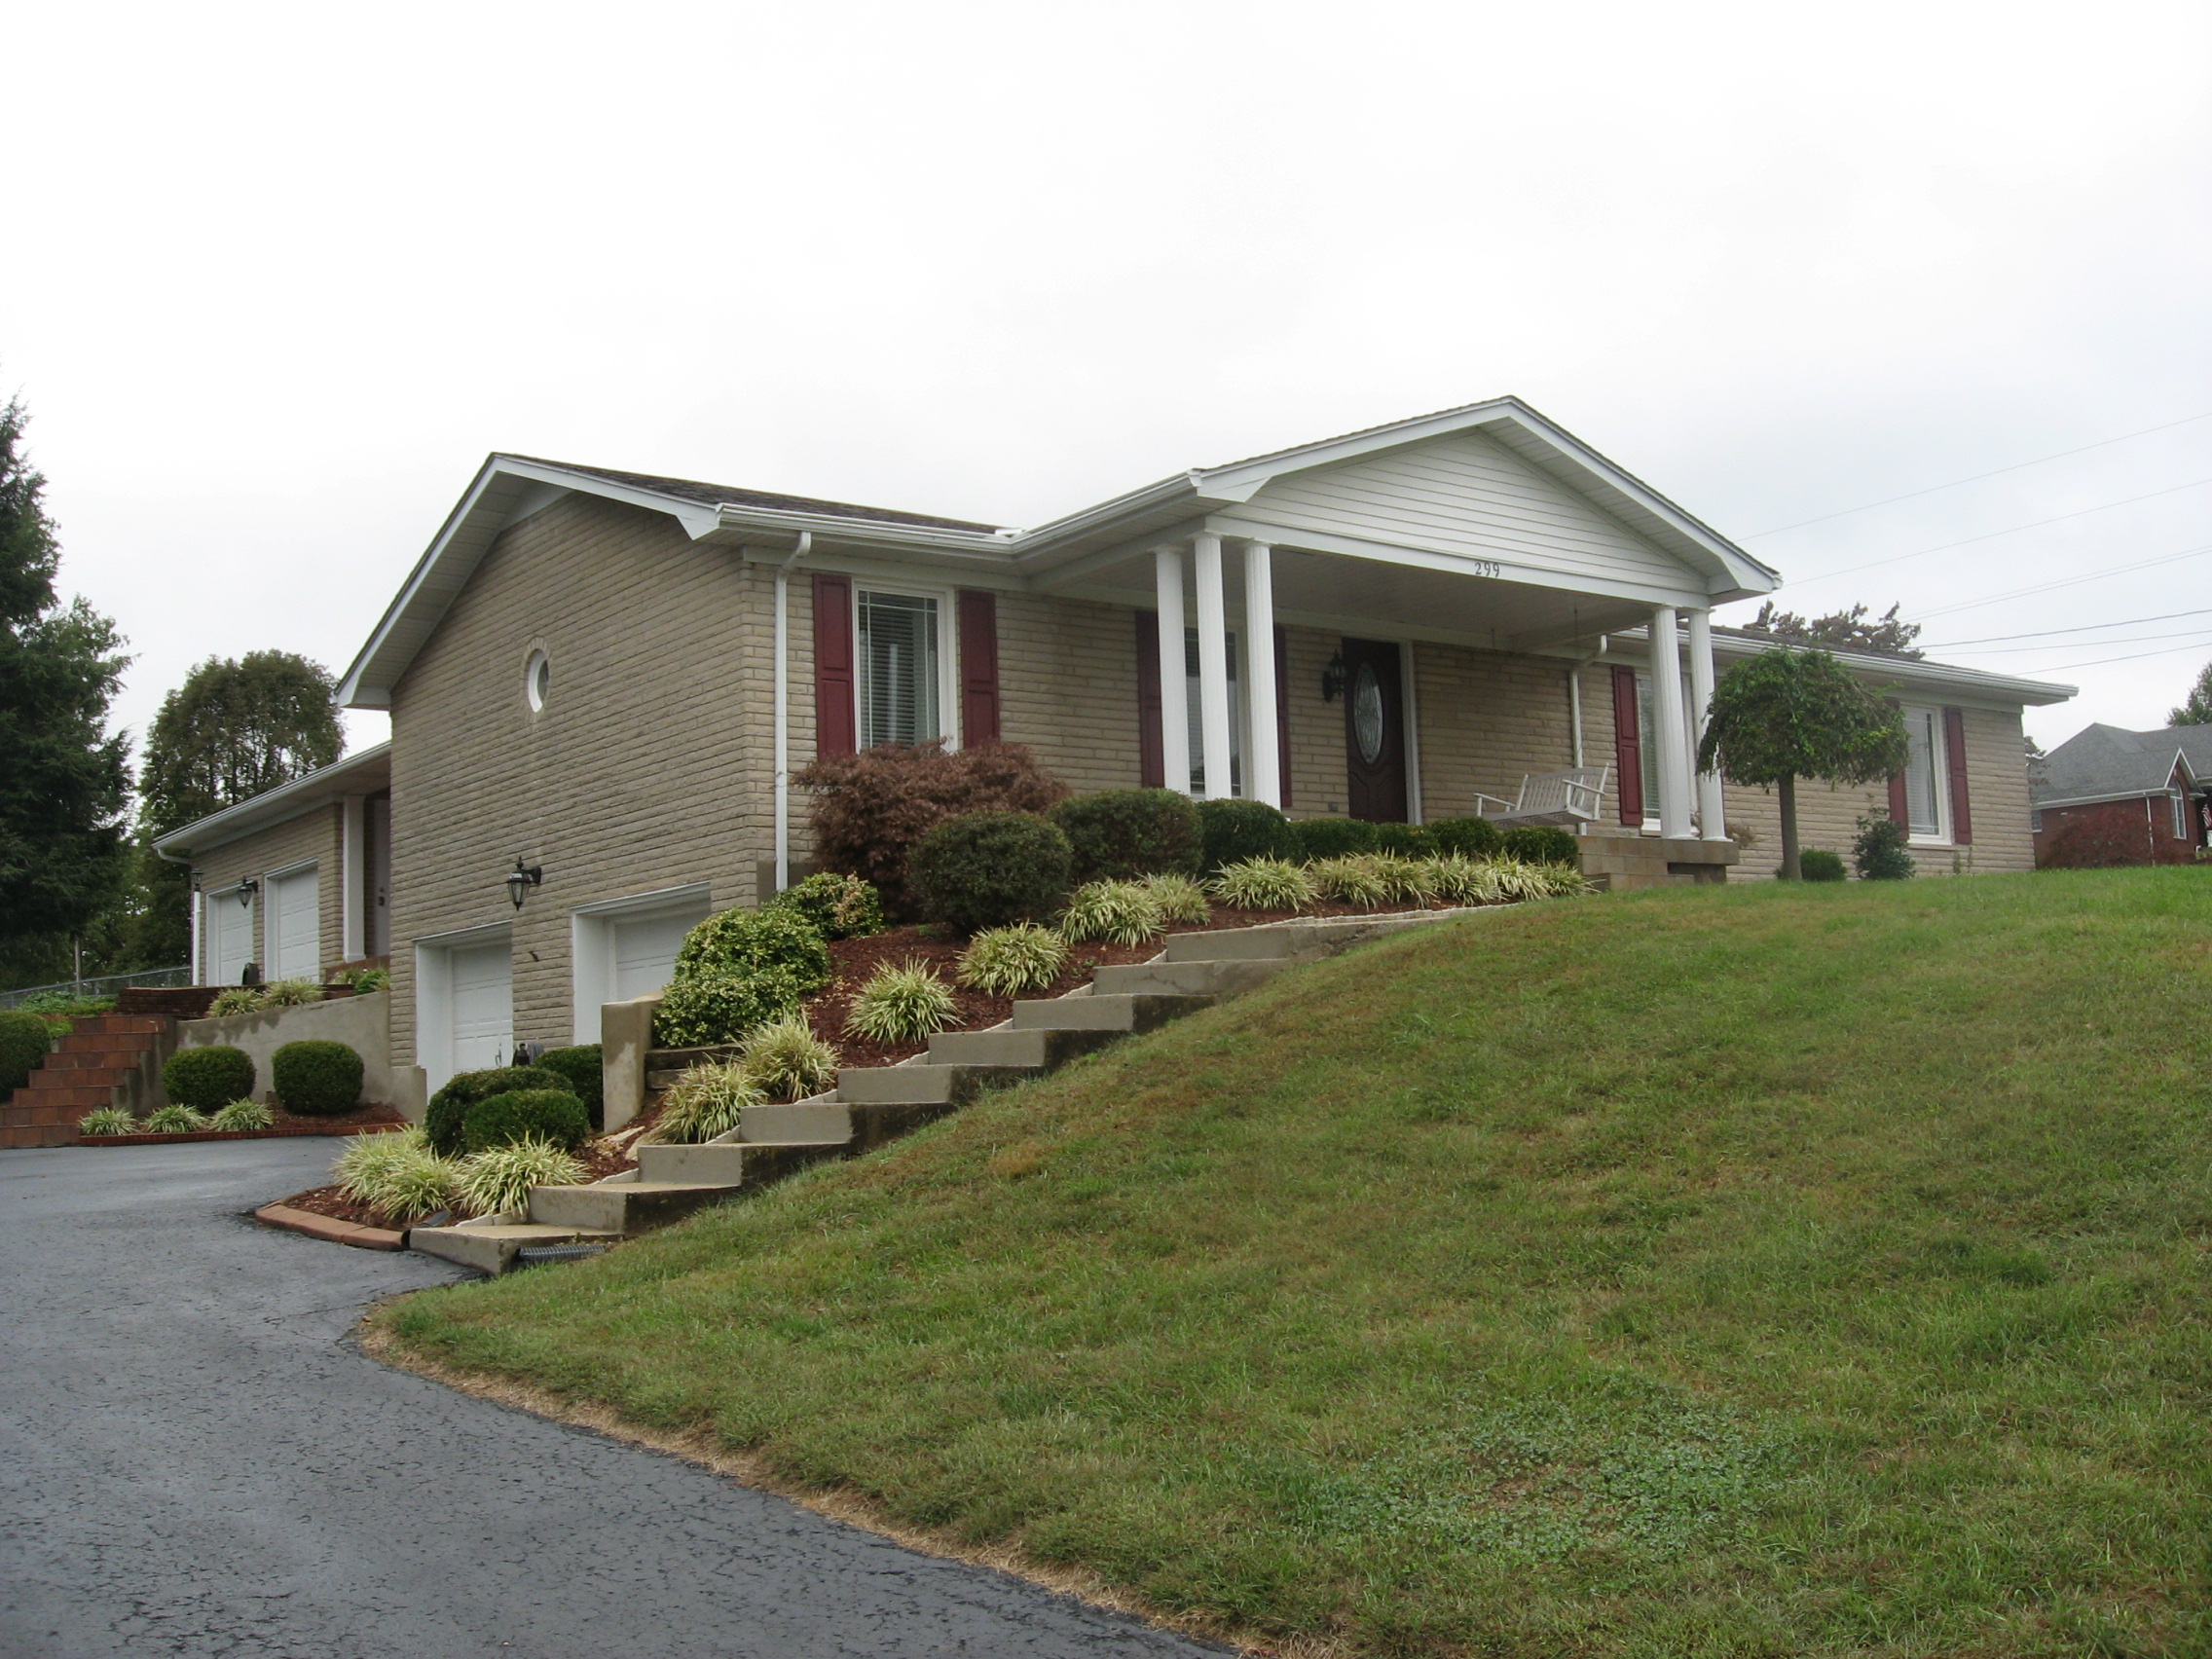 299 Bogard Ln, Mt. Washington, KY 40047